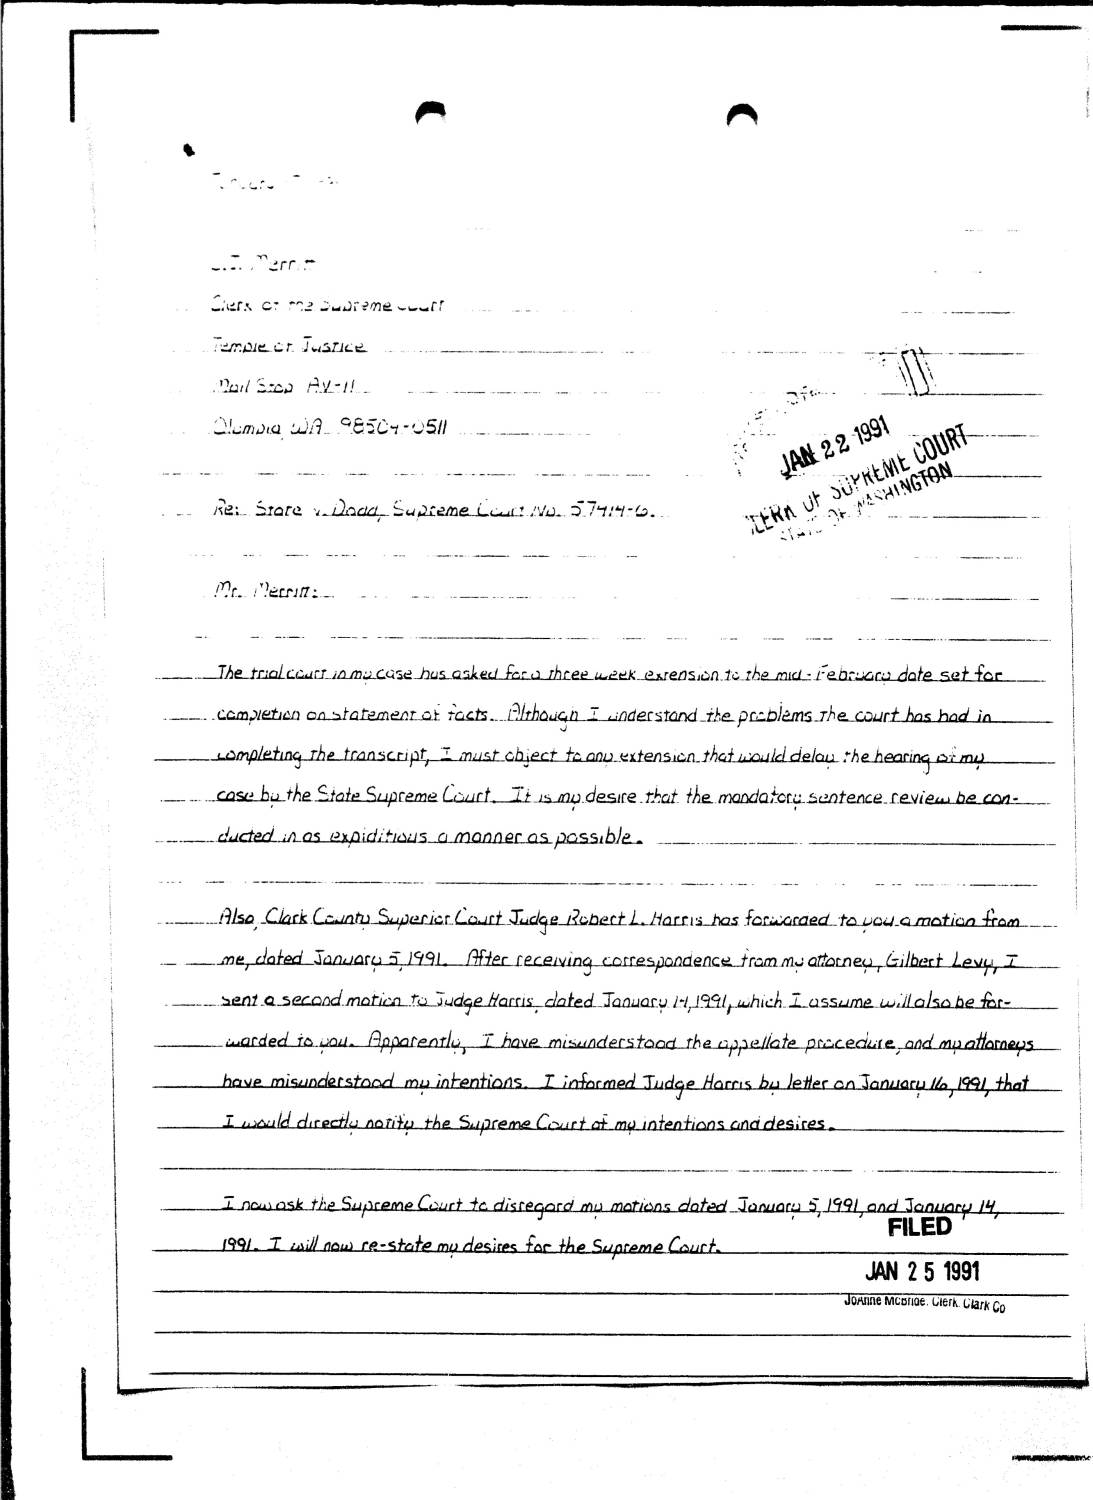 Letter filed to the Supreme Court of Washington state on behalf of Westley Allan Dodd where he asserts his desire to be executed quickly and waive his remaining appeals. Page 2 of 5.